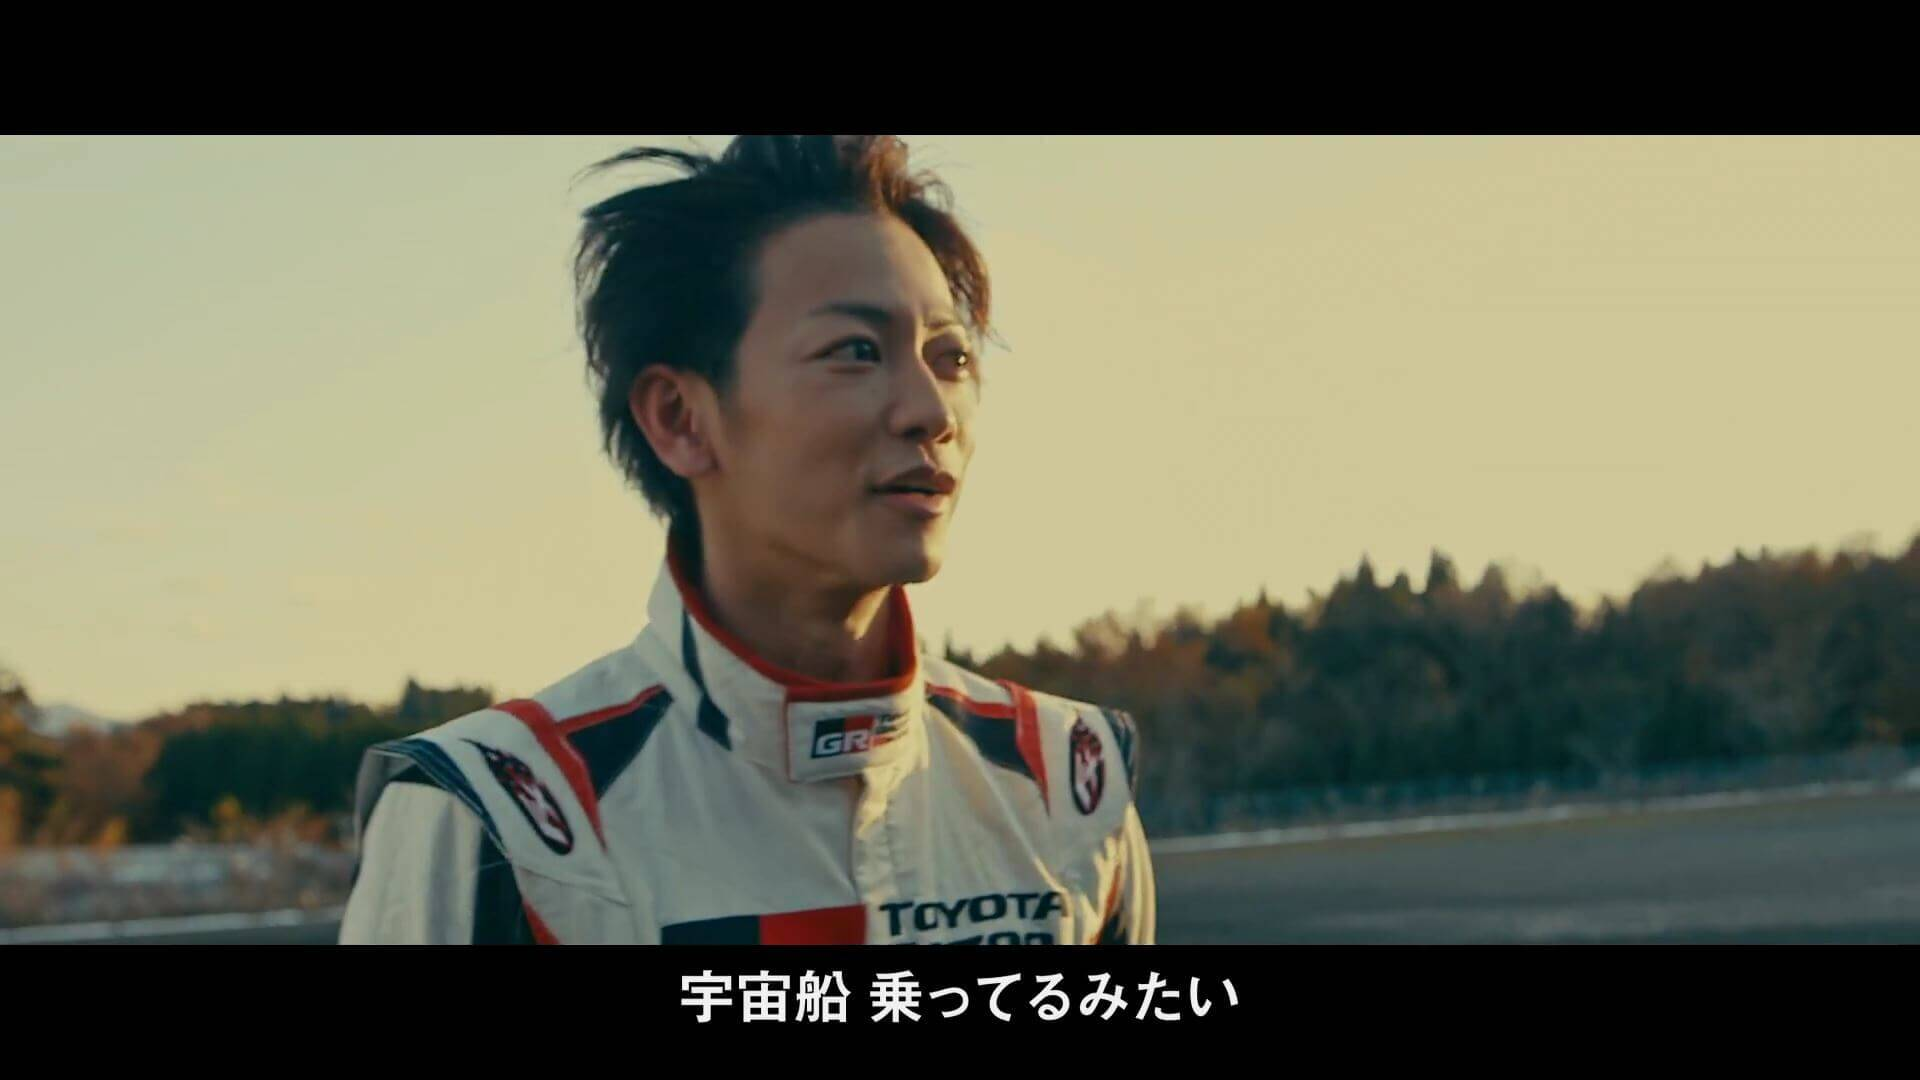 TOYOTA GAZOO Racing TAKERU SATOH MEETS GAZOO MORIZO mp4 20170712 101703 918